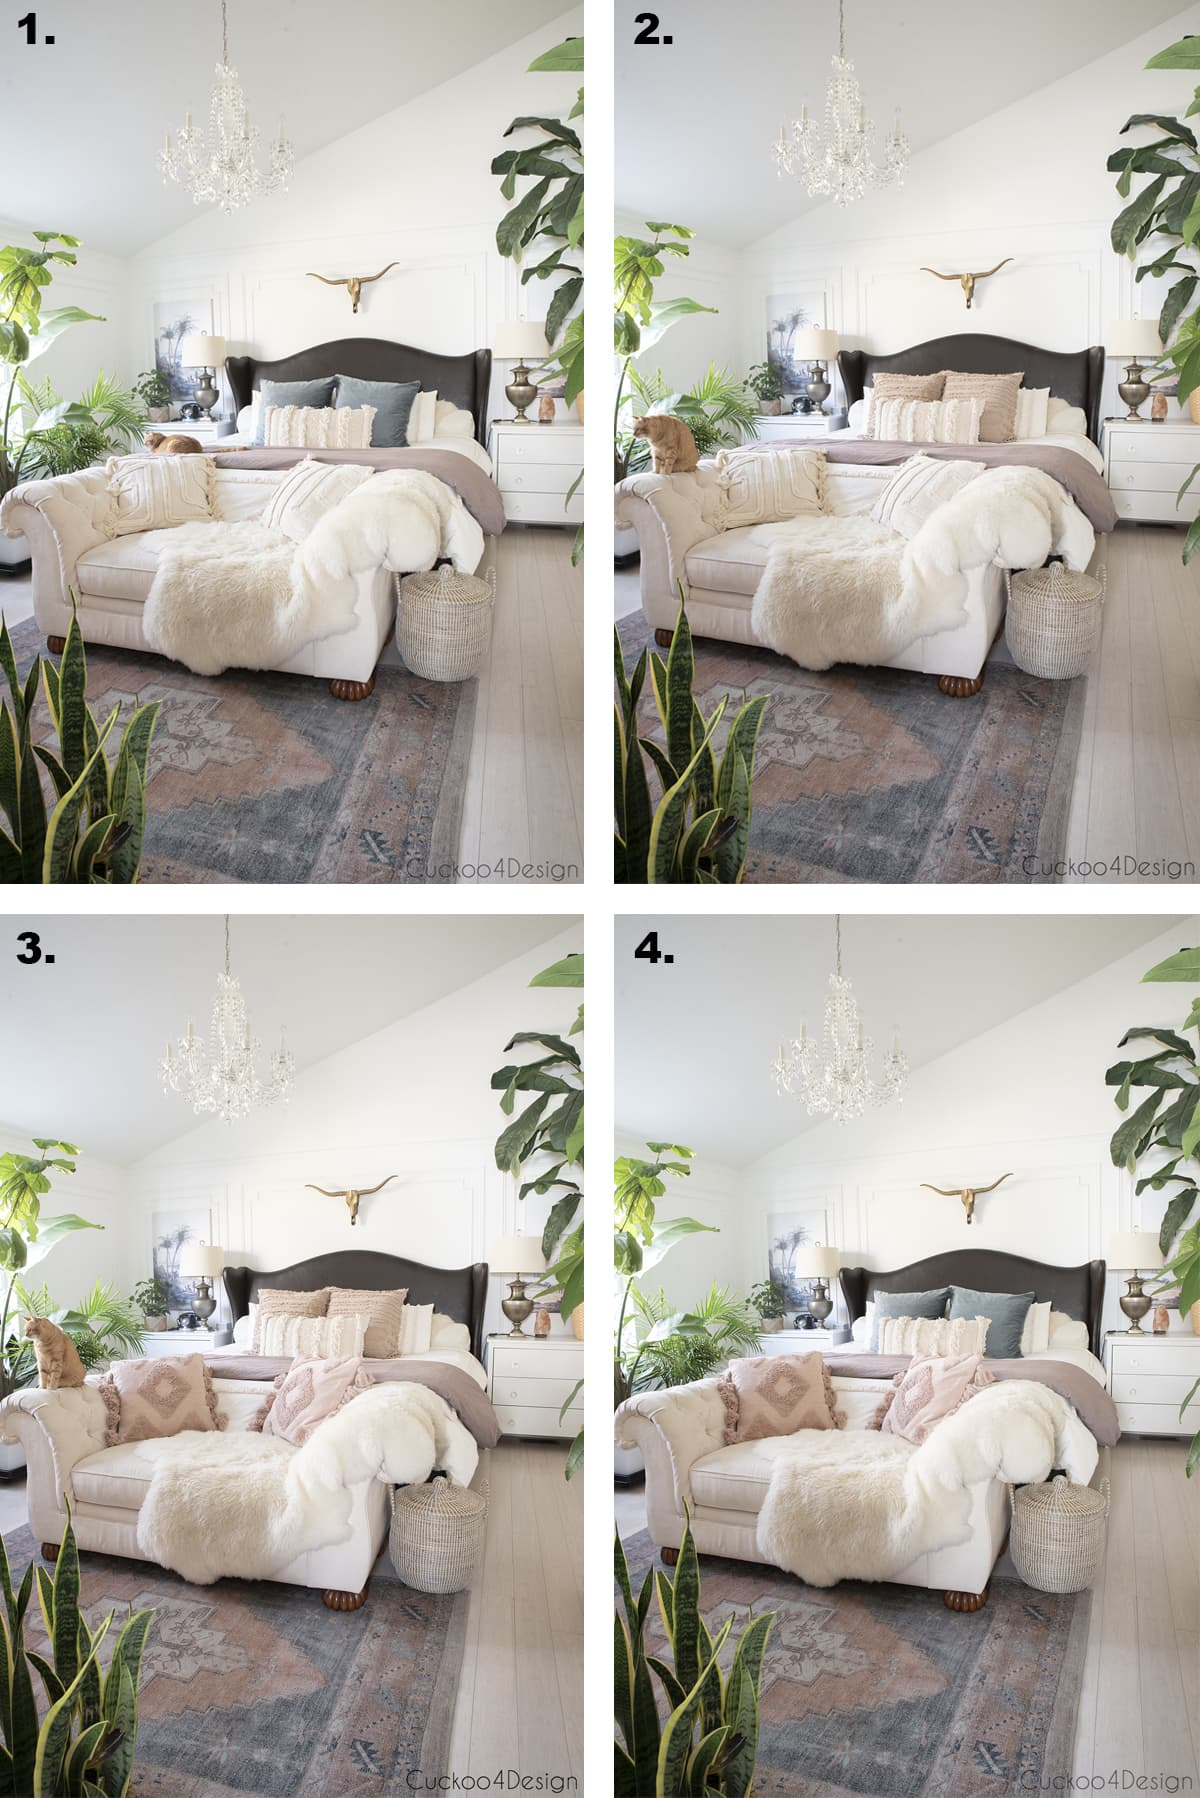 different pillow choices in bedroom